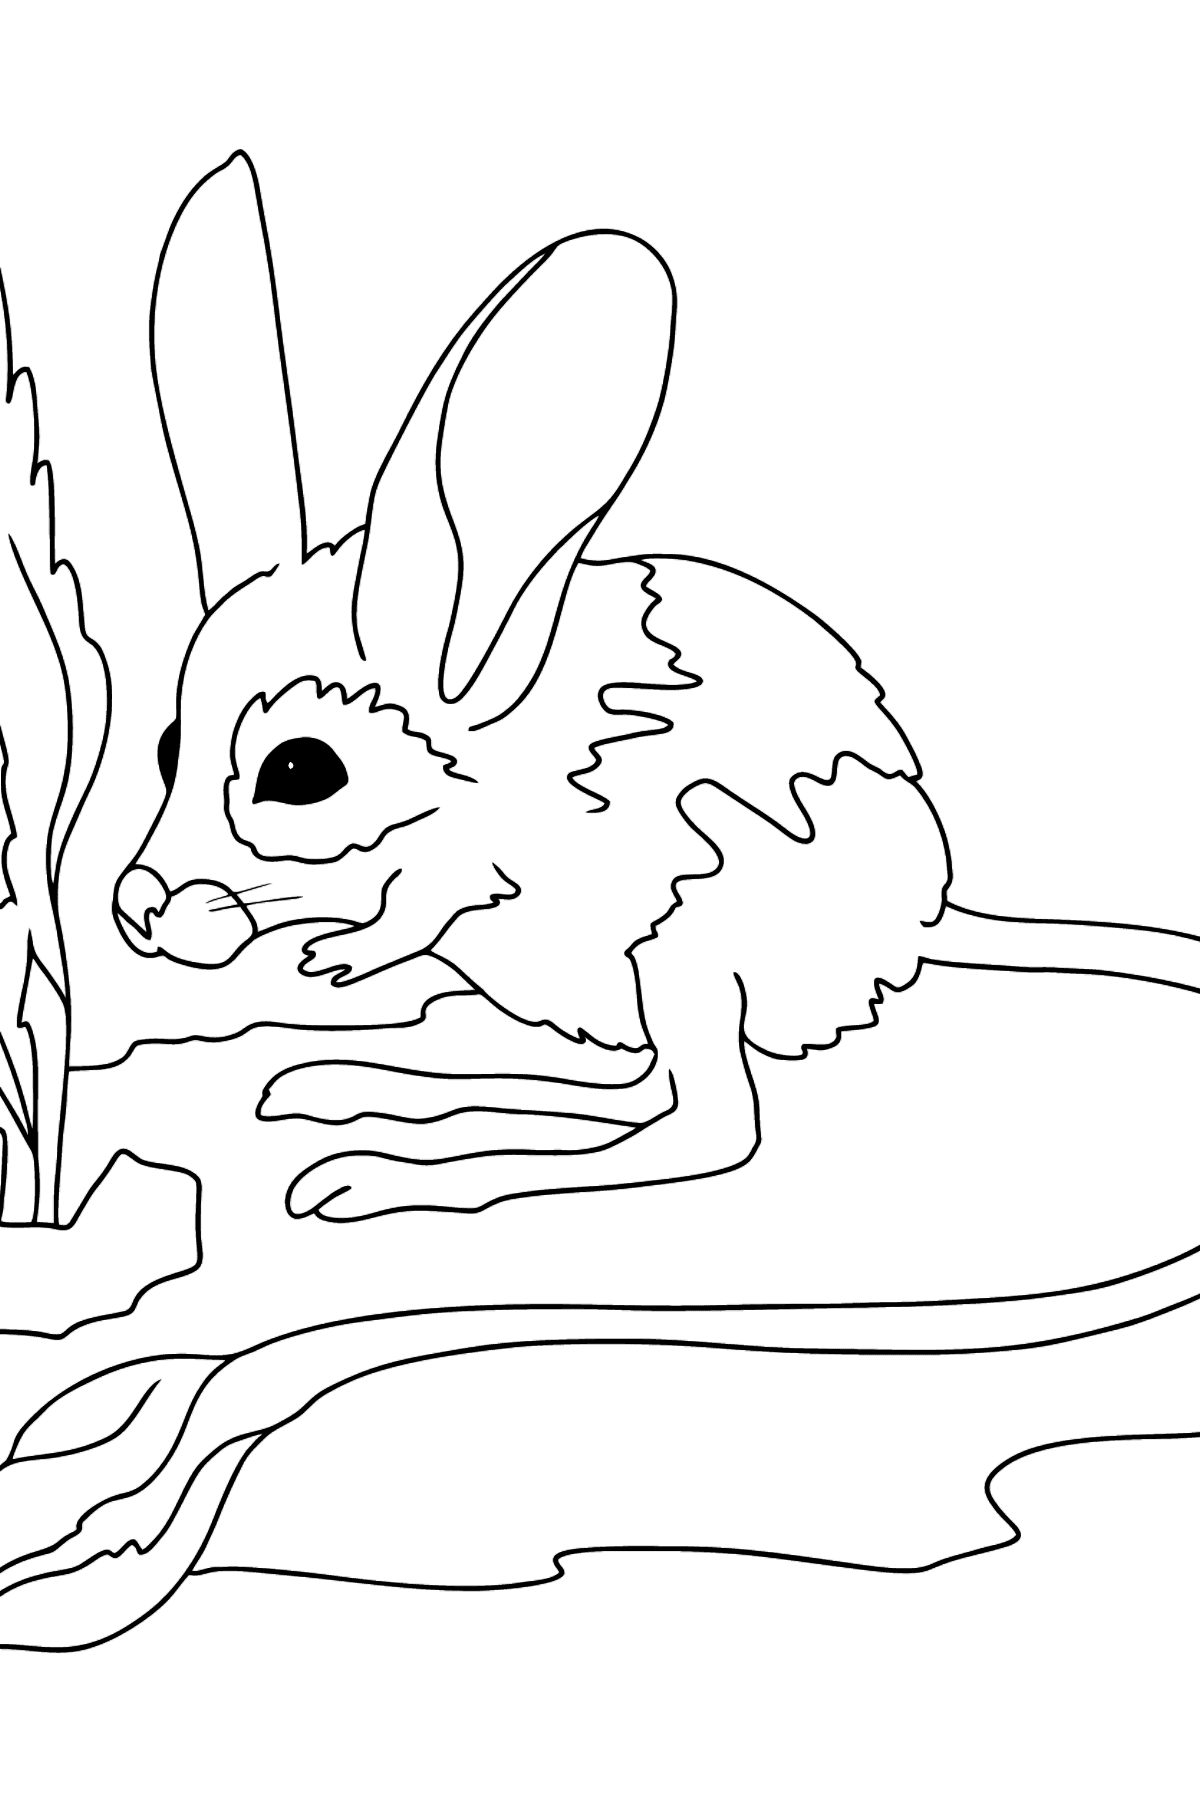 A Jerboa is Standing on its Long Hind Legs Coloring Page - Coloring Pages for Kids